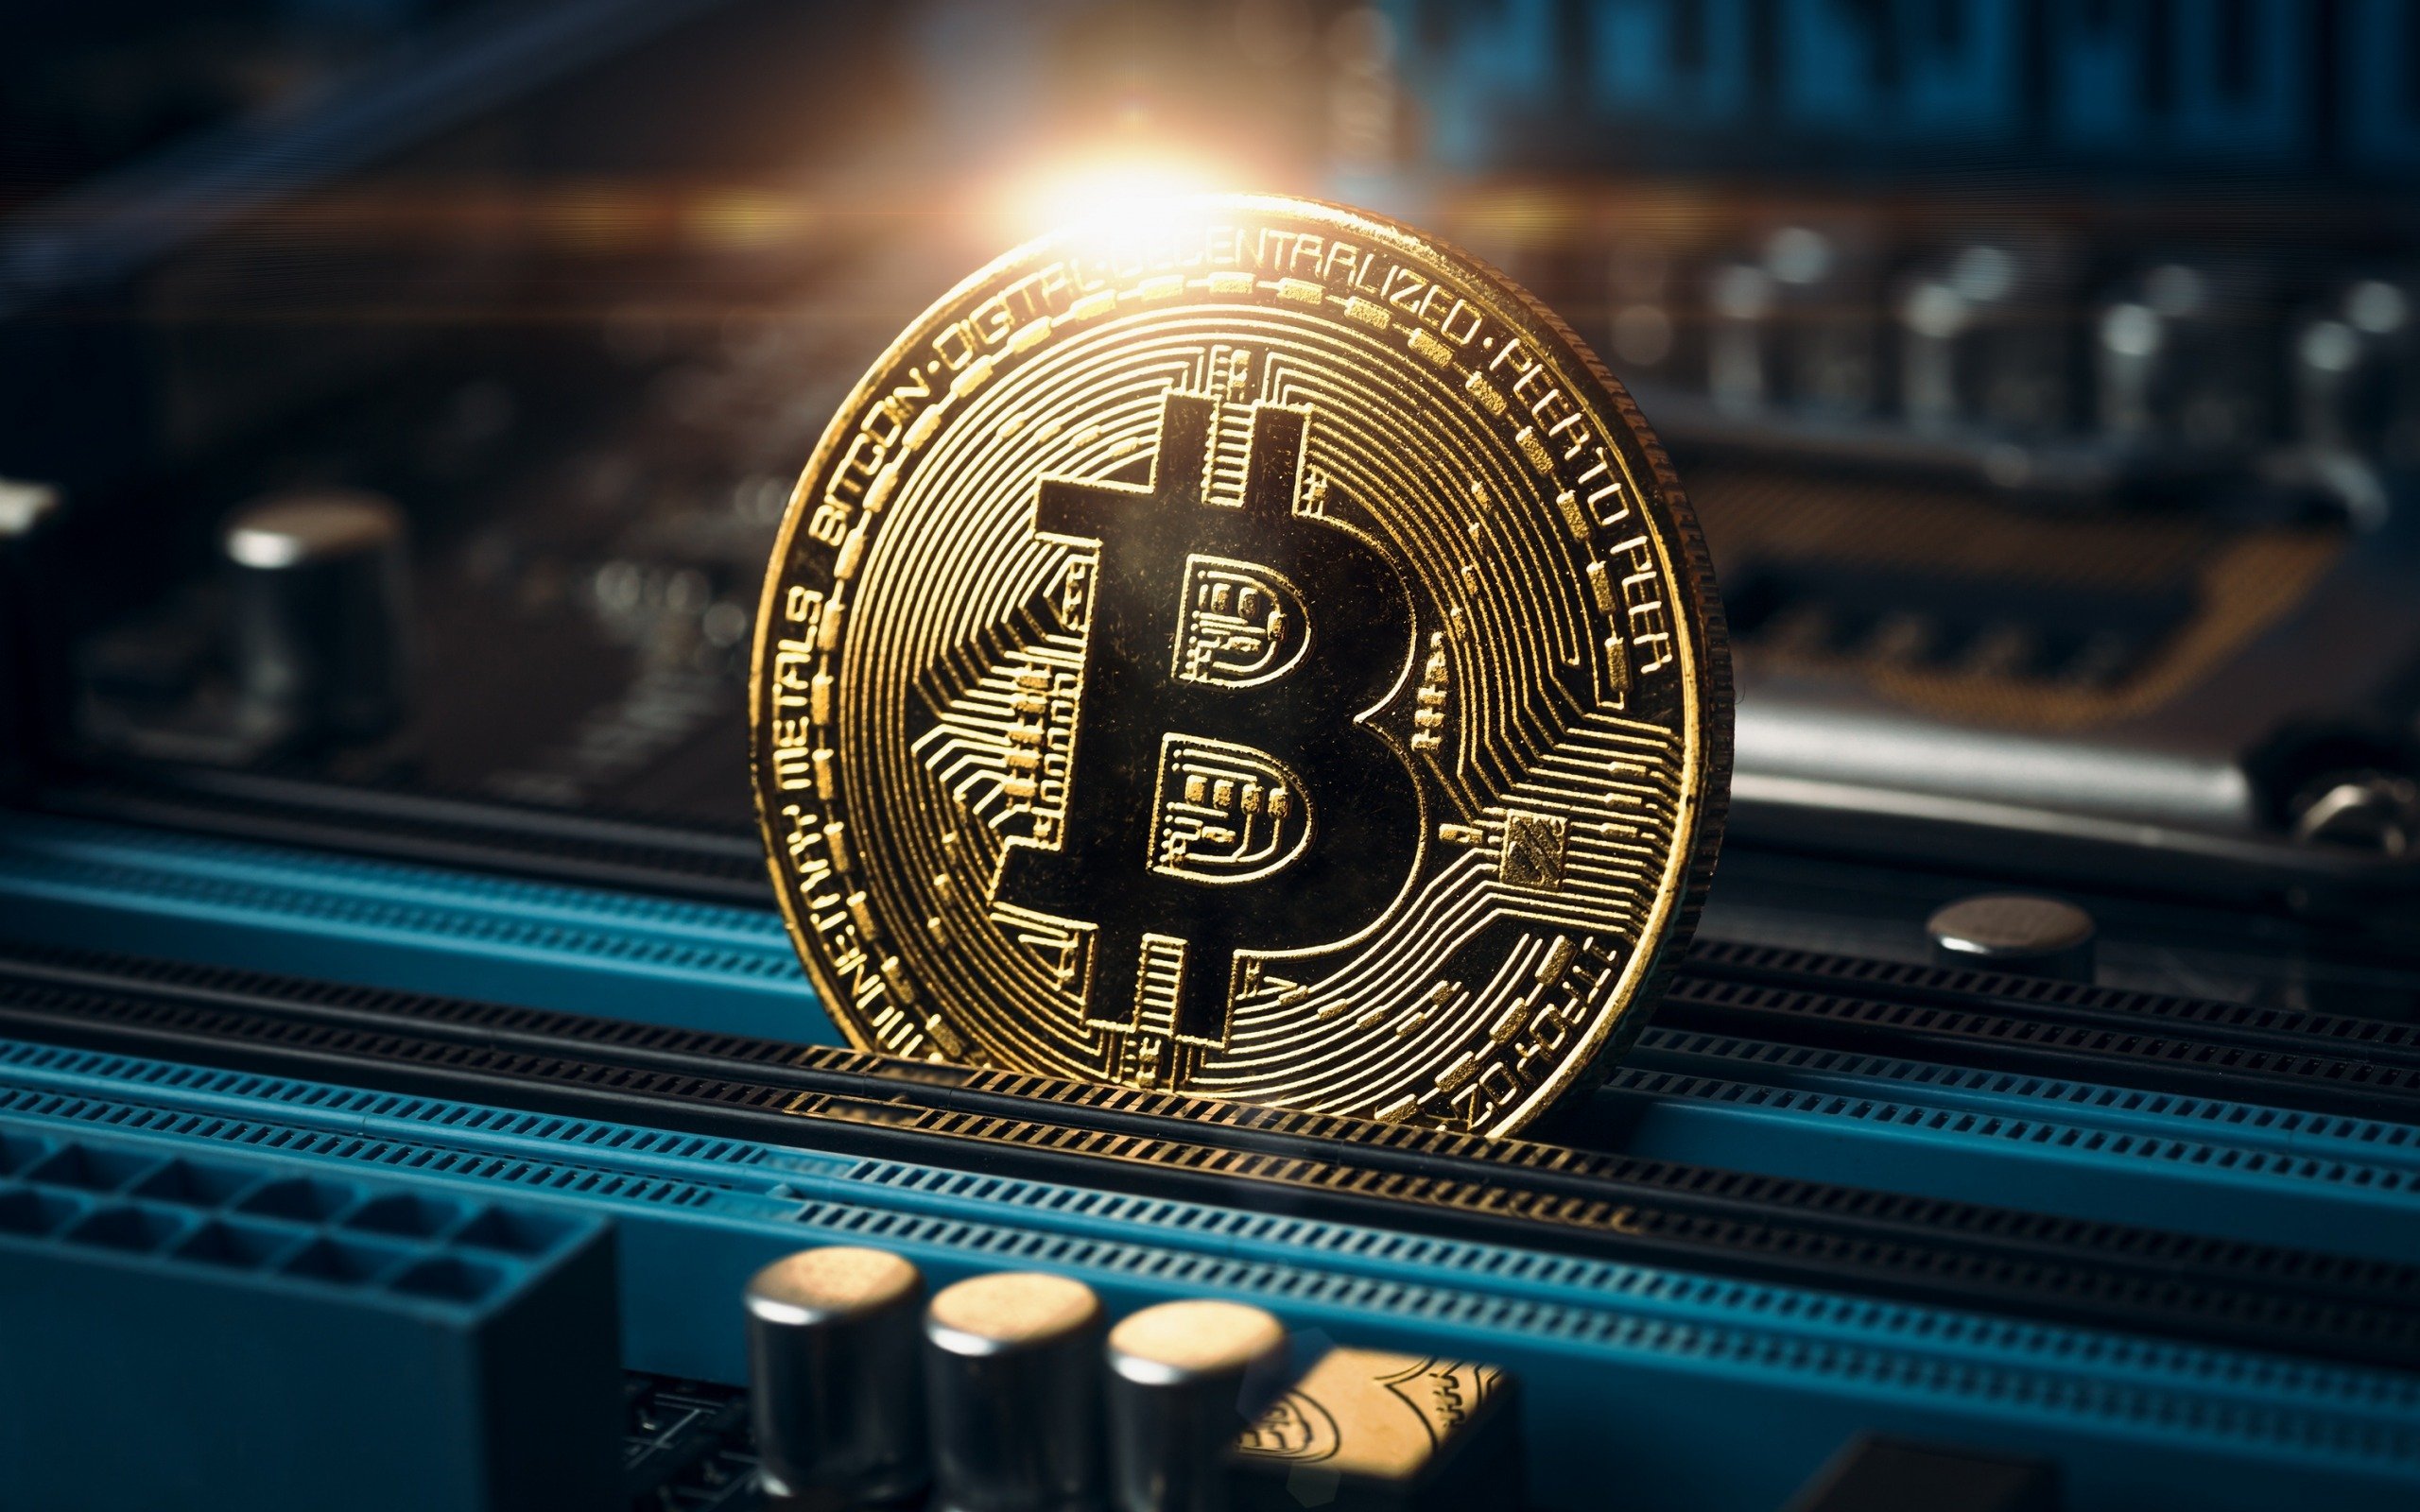 bitcoin crypto currency business concepts mining concepts gold coin